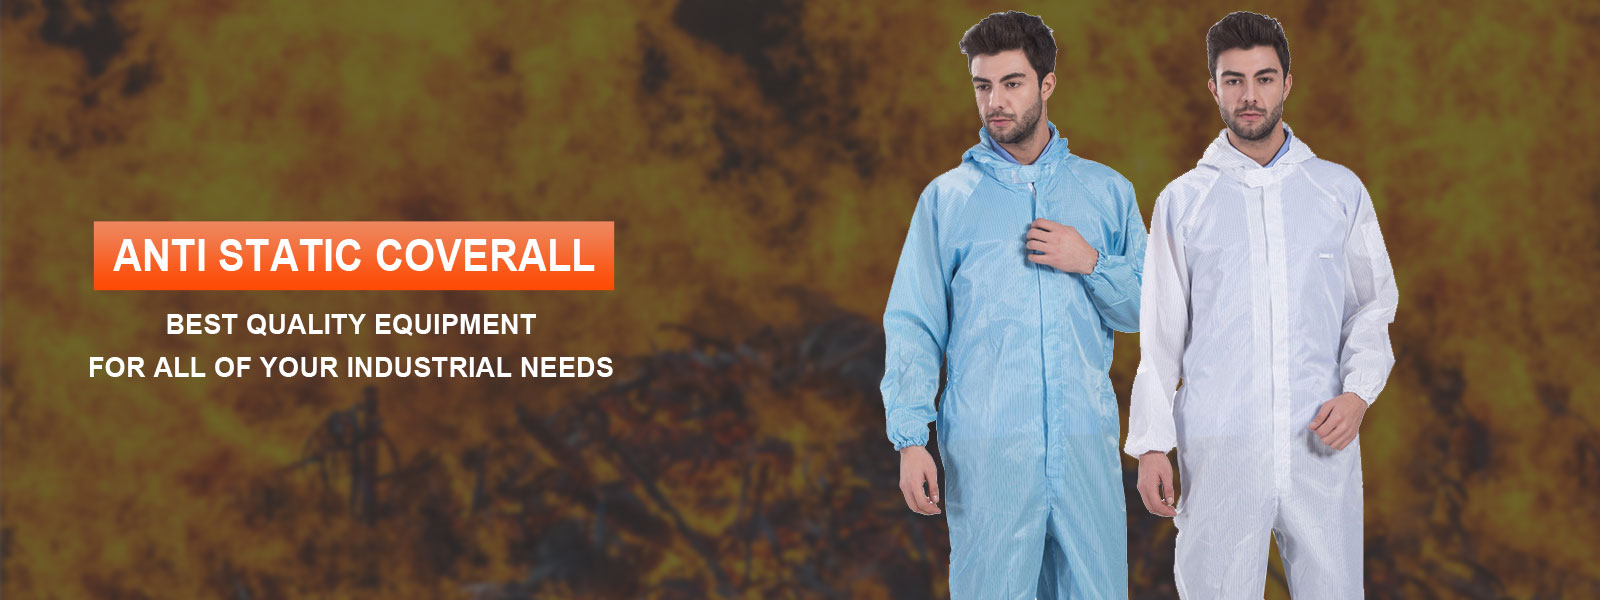 Anti Static Coverall Manufacturers in El Salvador